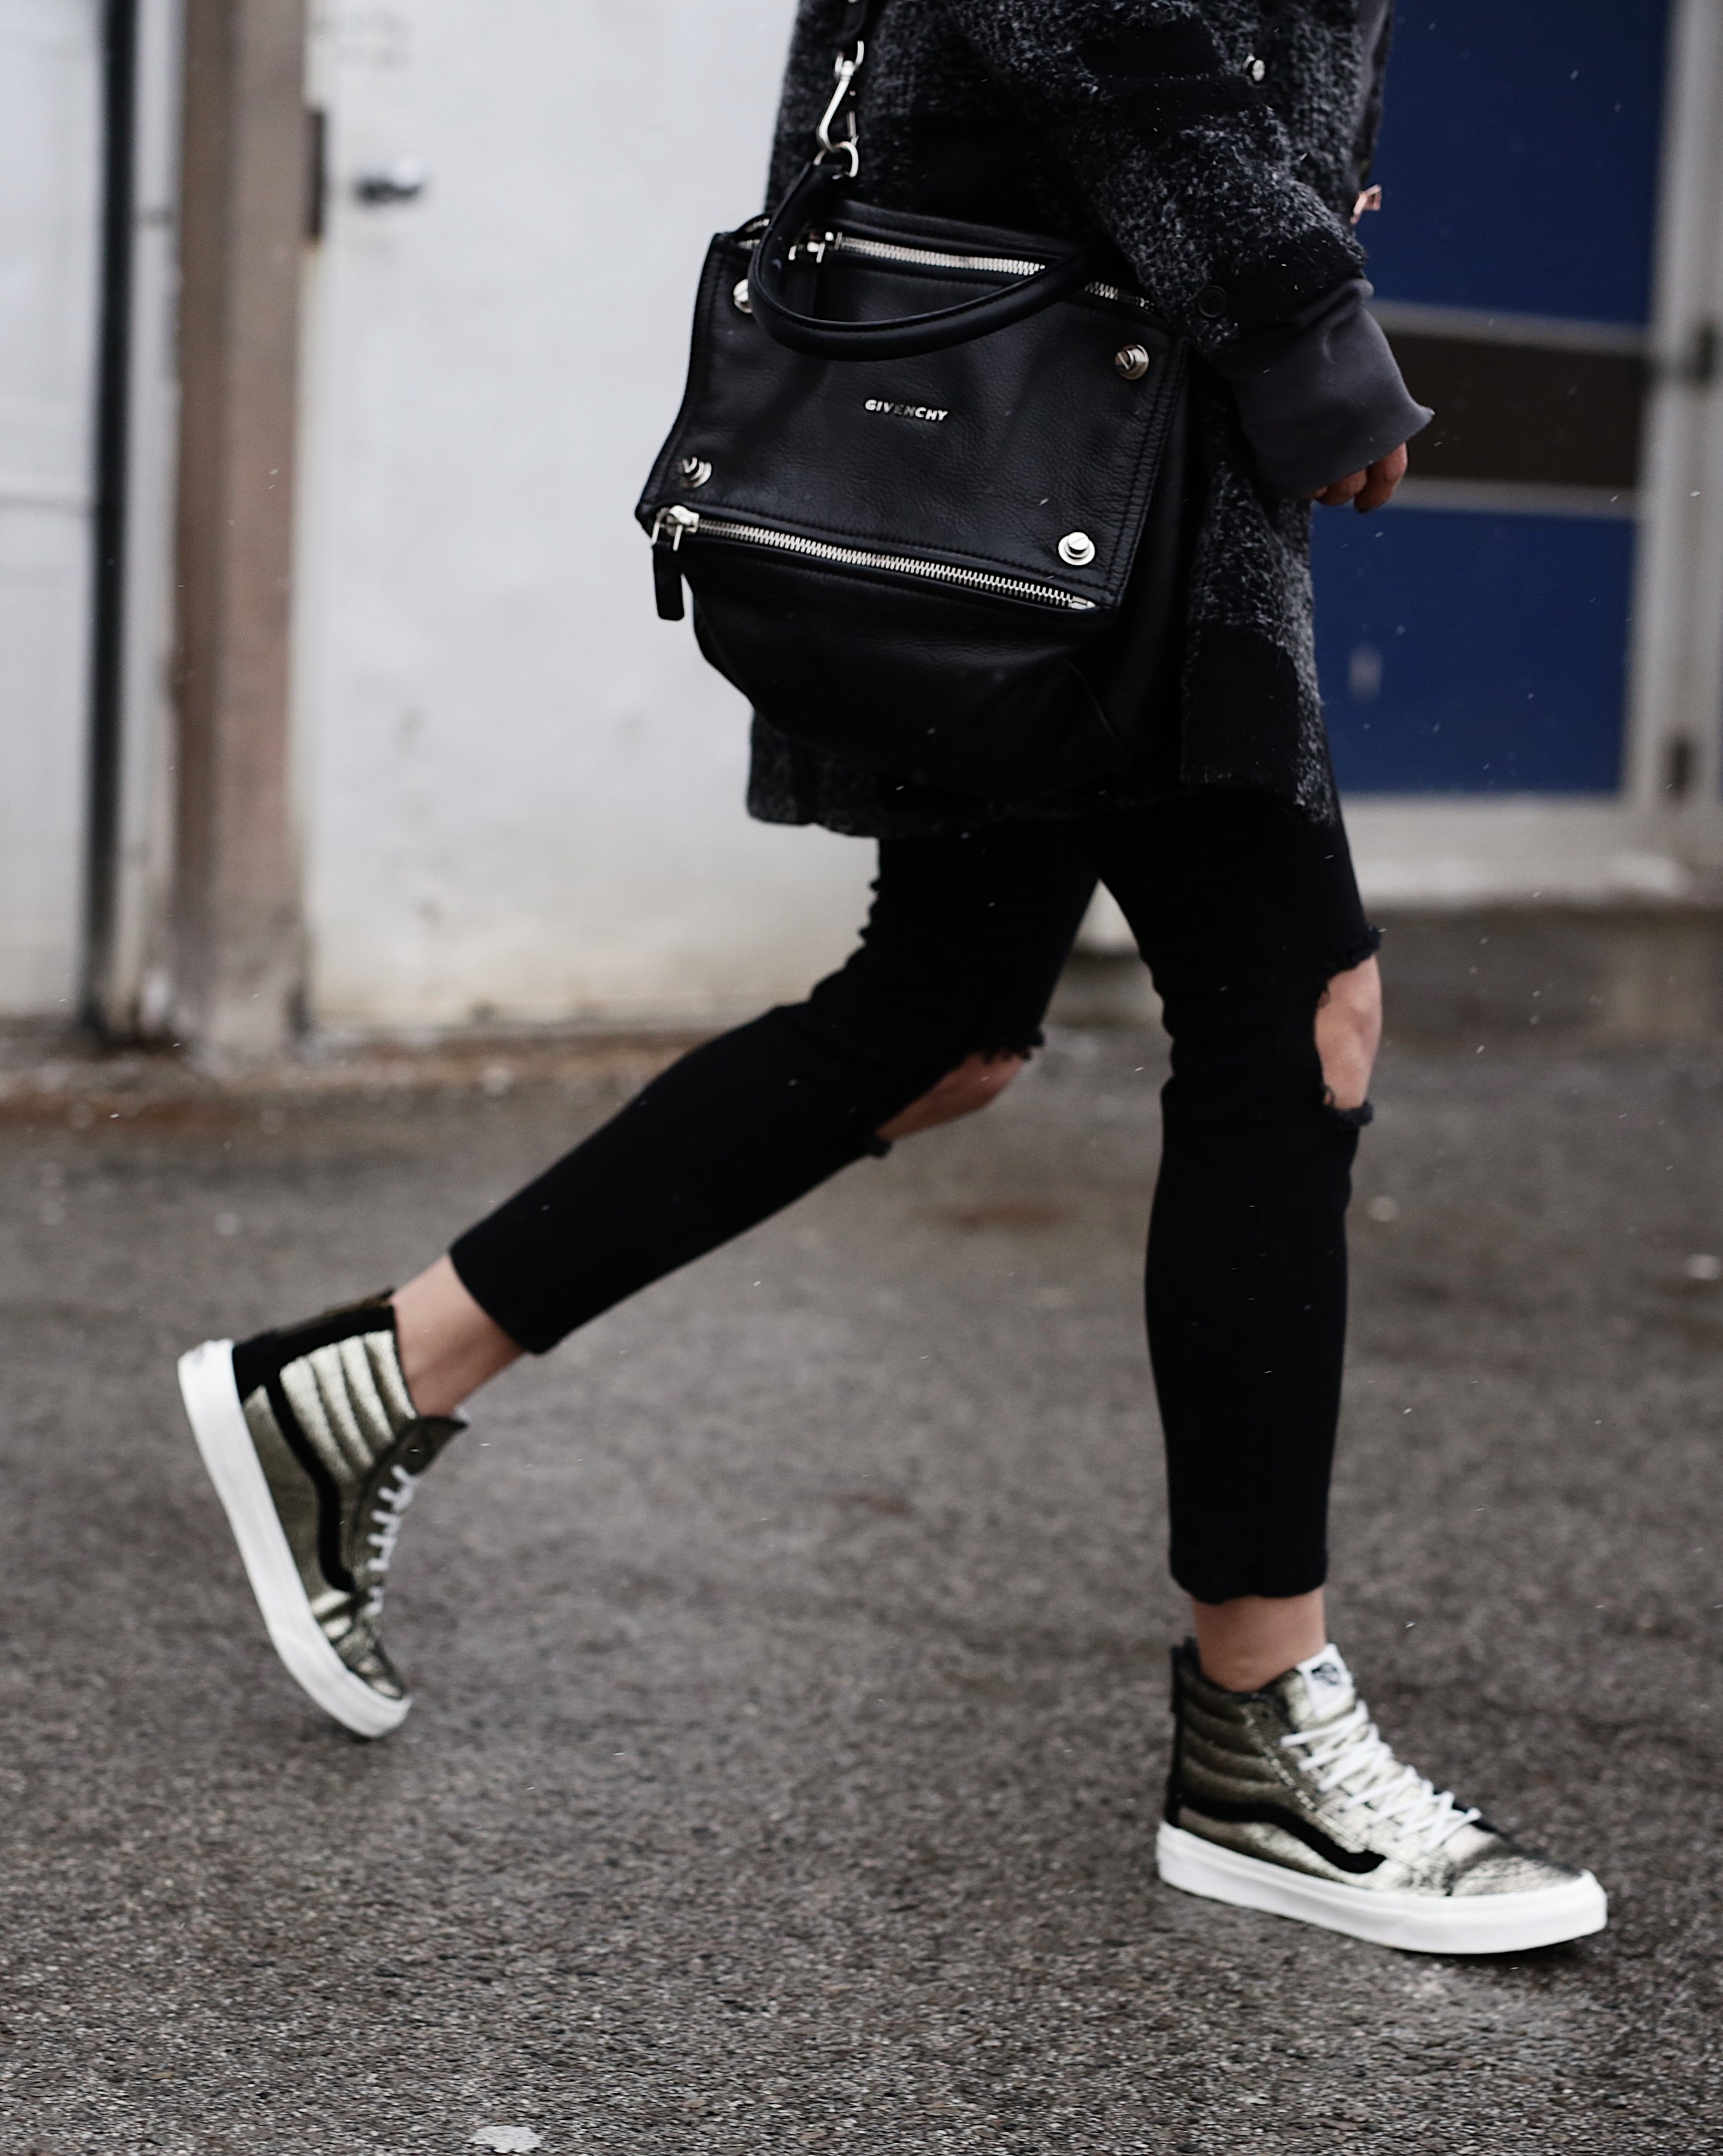 Givenchy Pandora bag, gold Vans SK8-HI sneakers, hoodie, casual street style -10 Statement Sneakers To Buy Now, glitter, metallic, neon, white canvas_7330.JPG